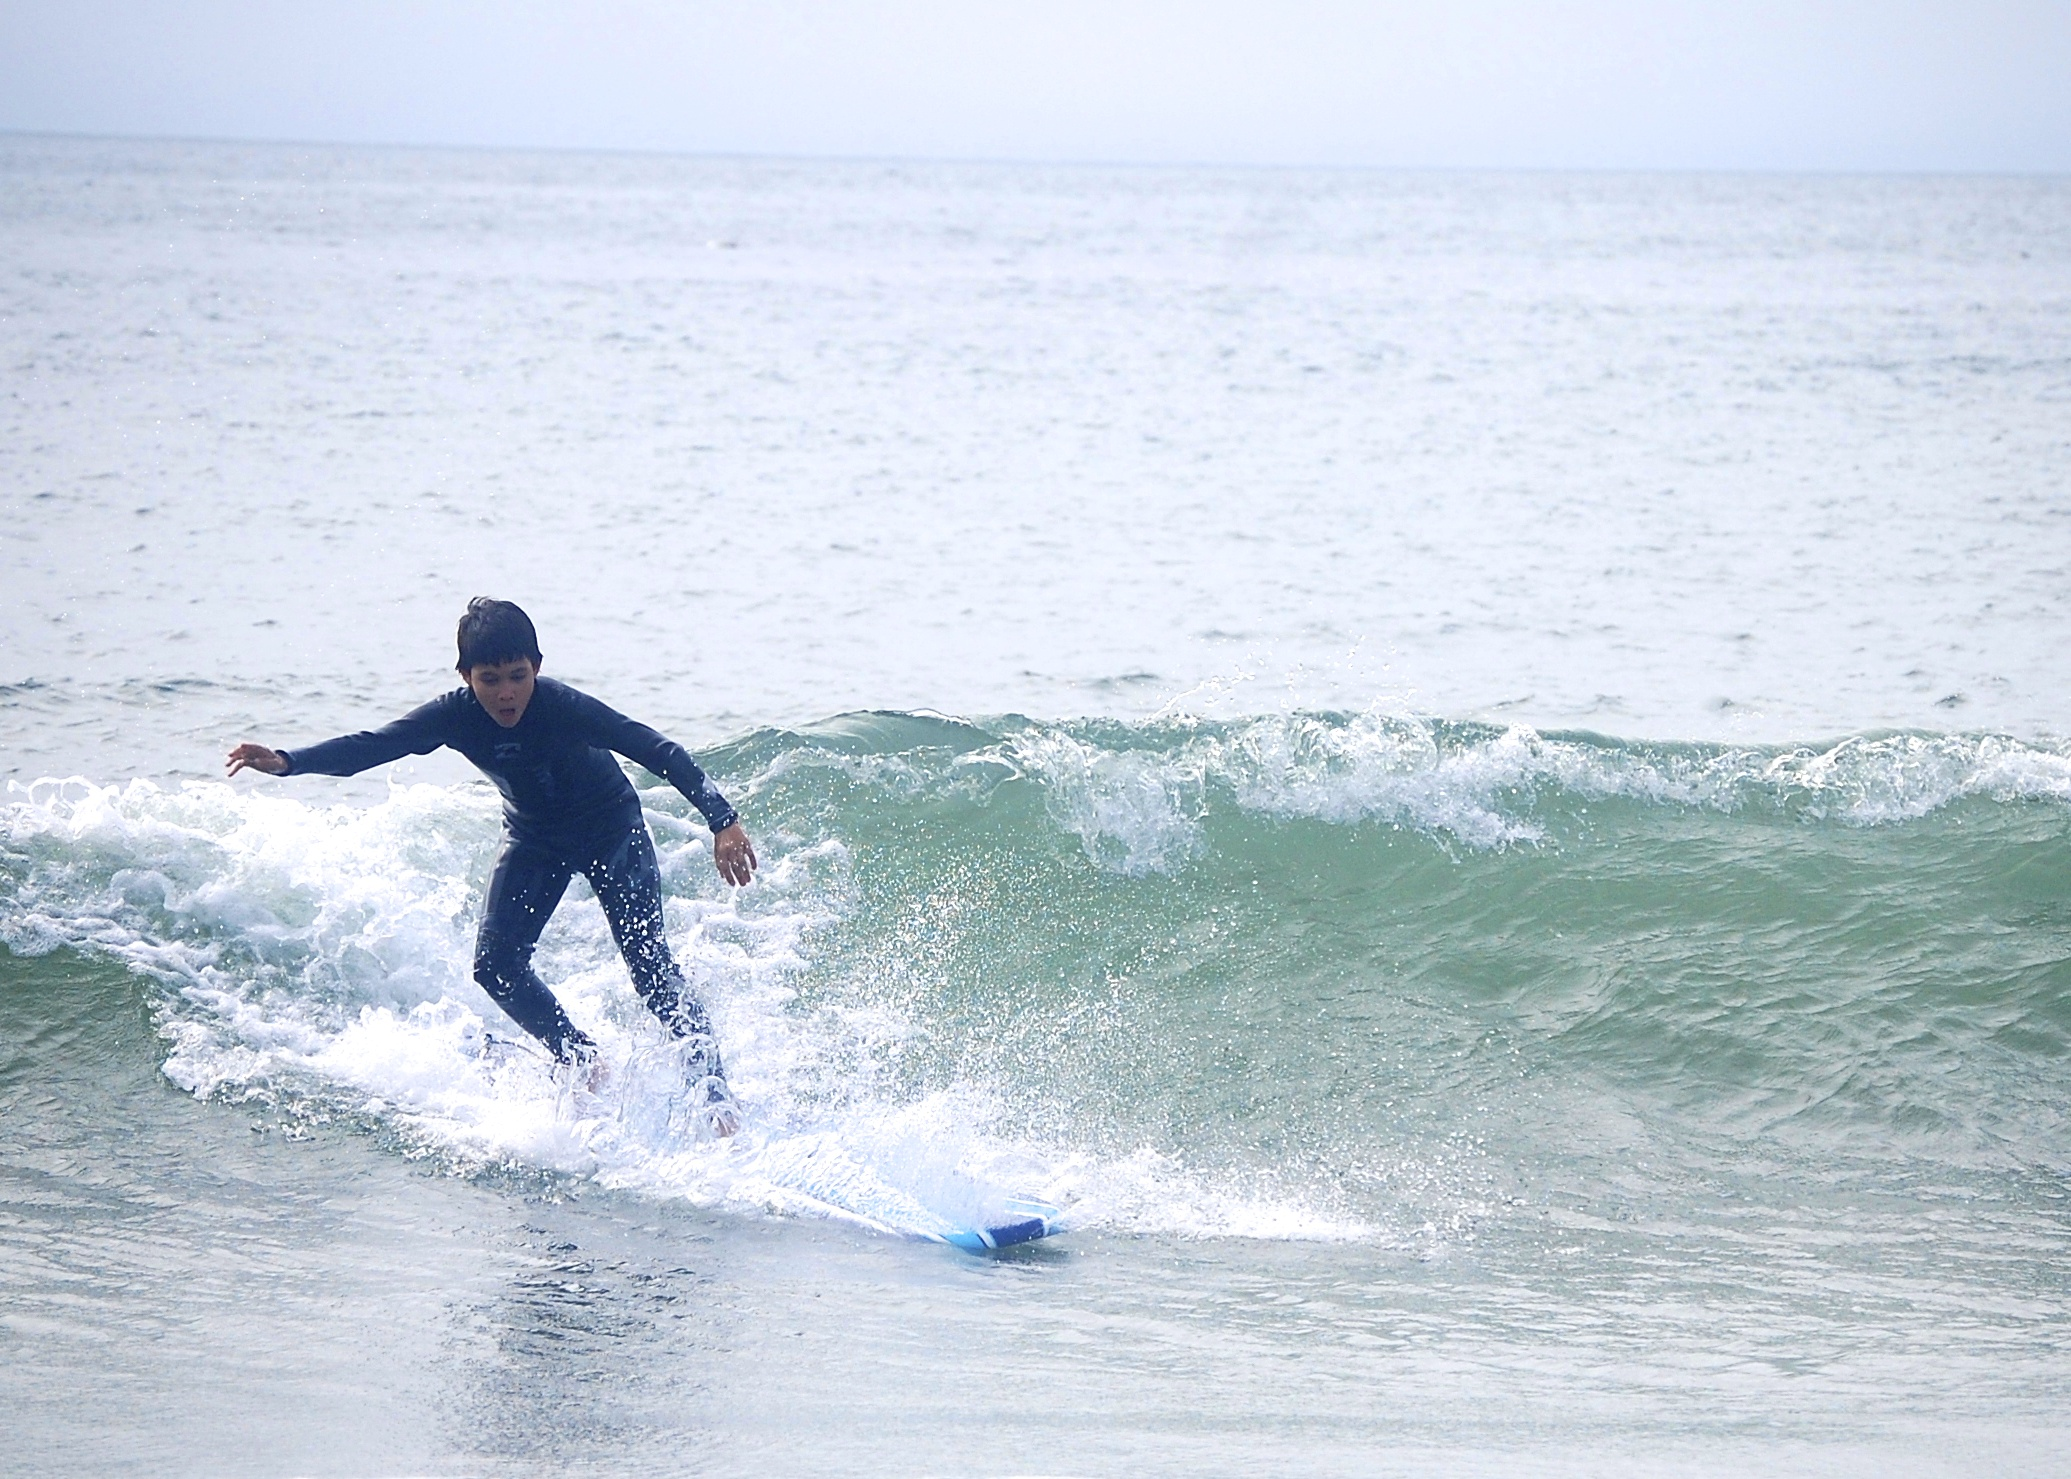 12 year old catching a big wave